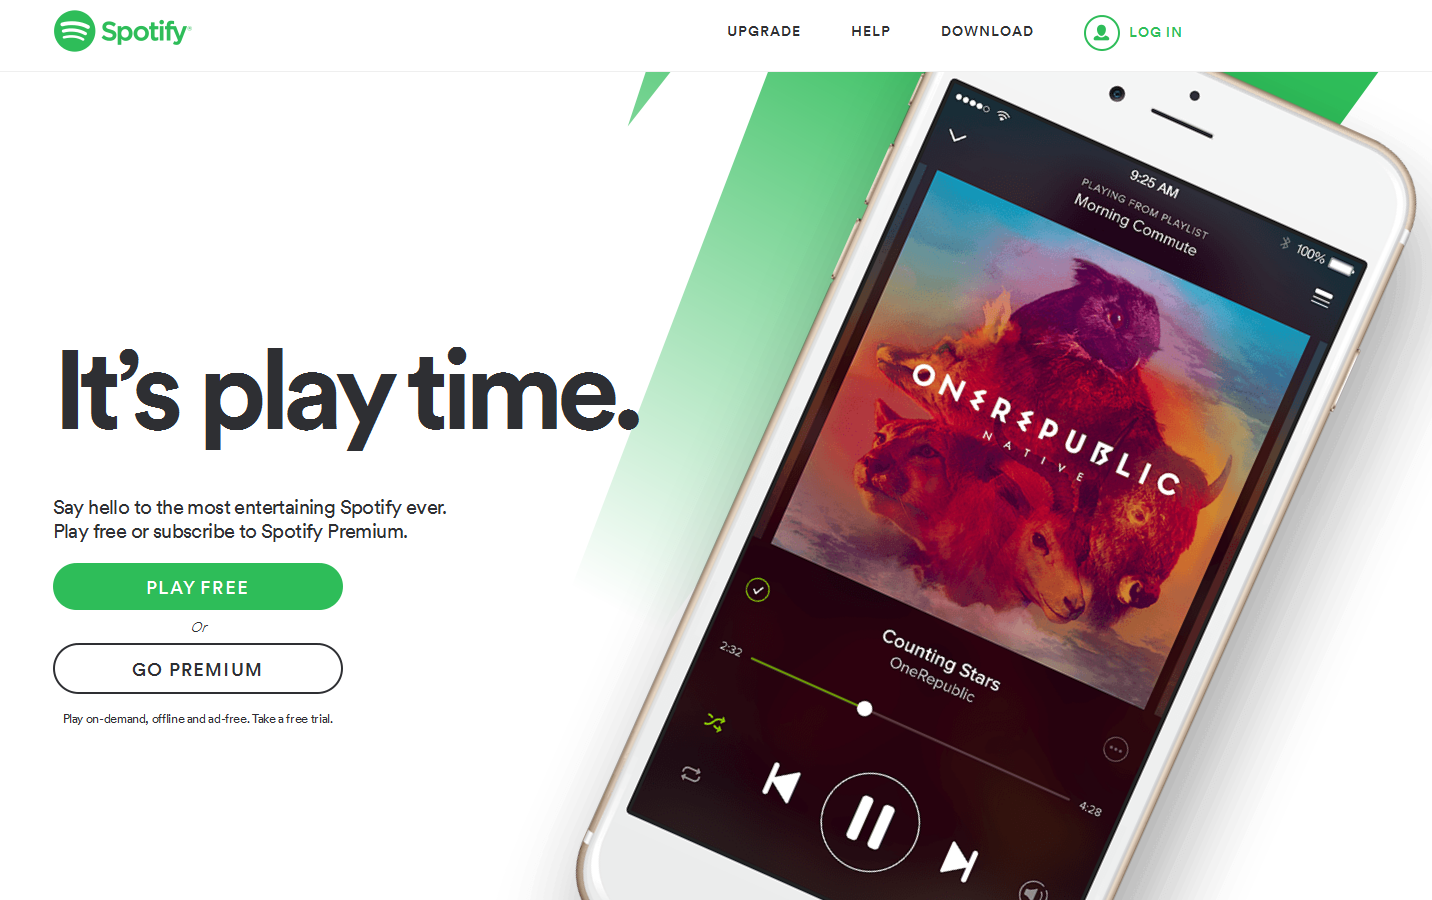 Spotify offers a free trial